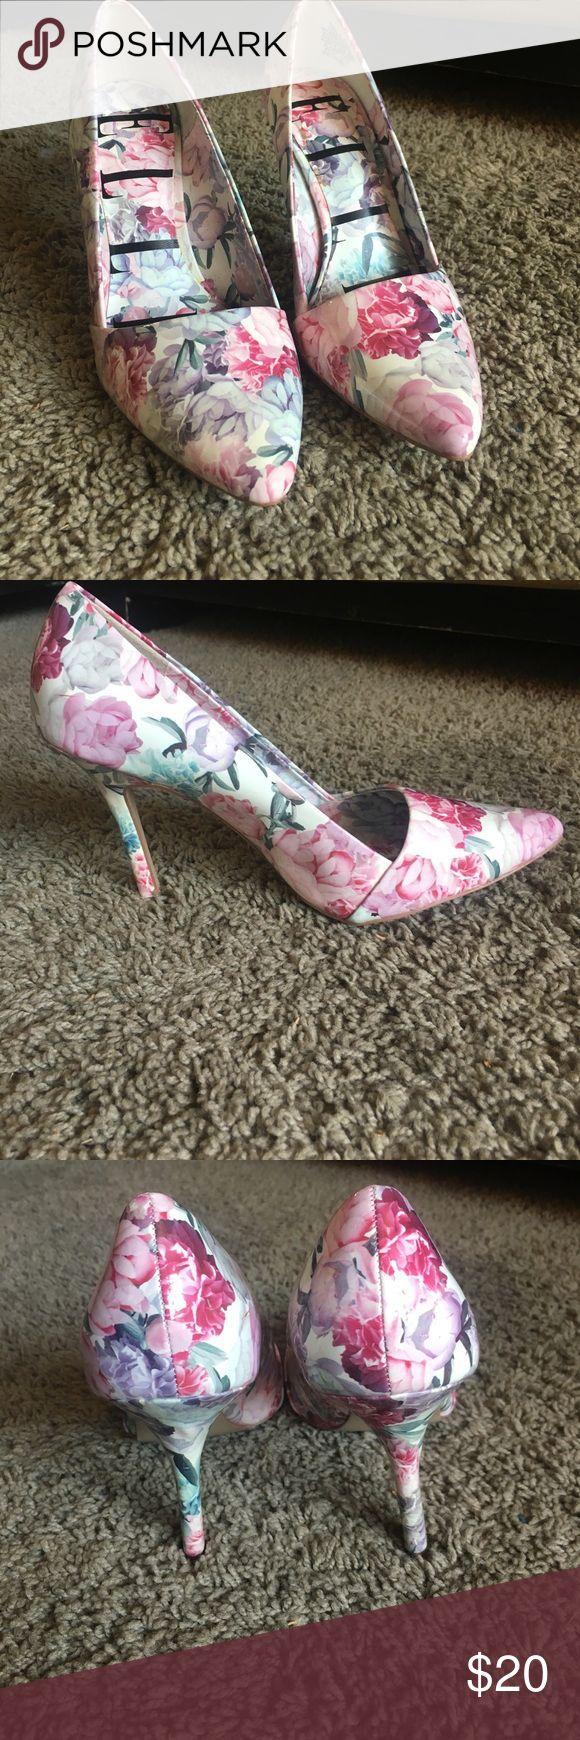 Floral pink high heels Floral pink high heels! I'm 7.5 US, the shoe says 8 US. Wore once, maybe twice. They are in prefect condition! And so cute! Elle Shoes Heels